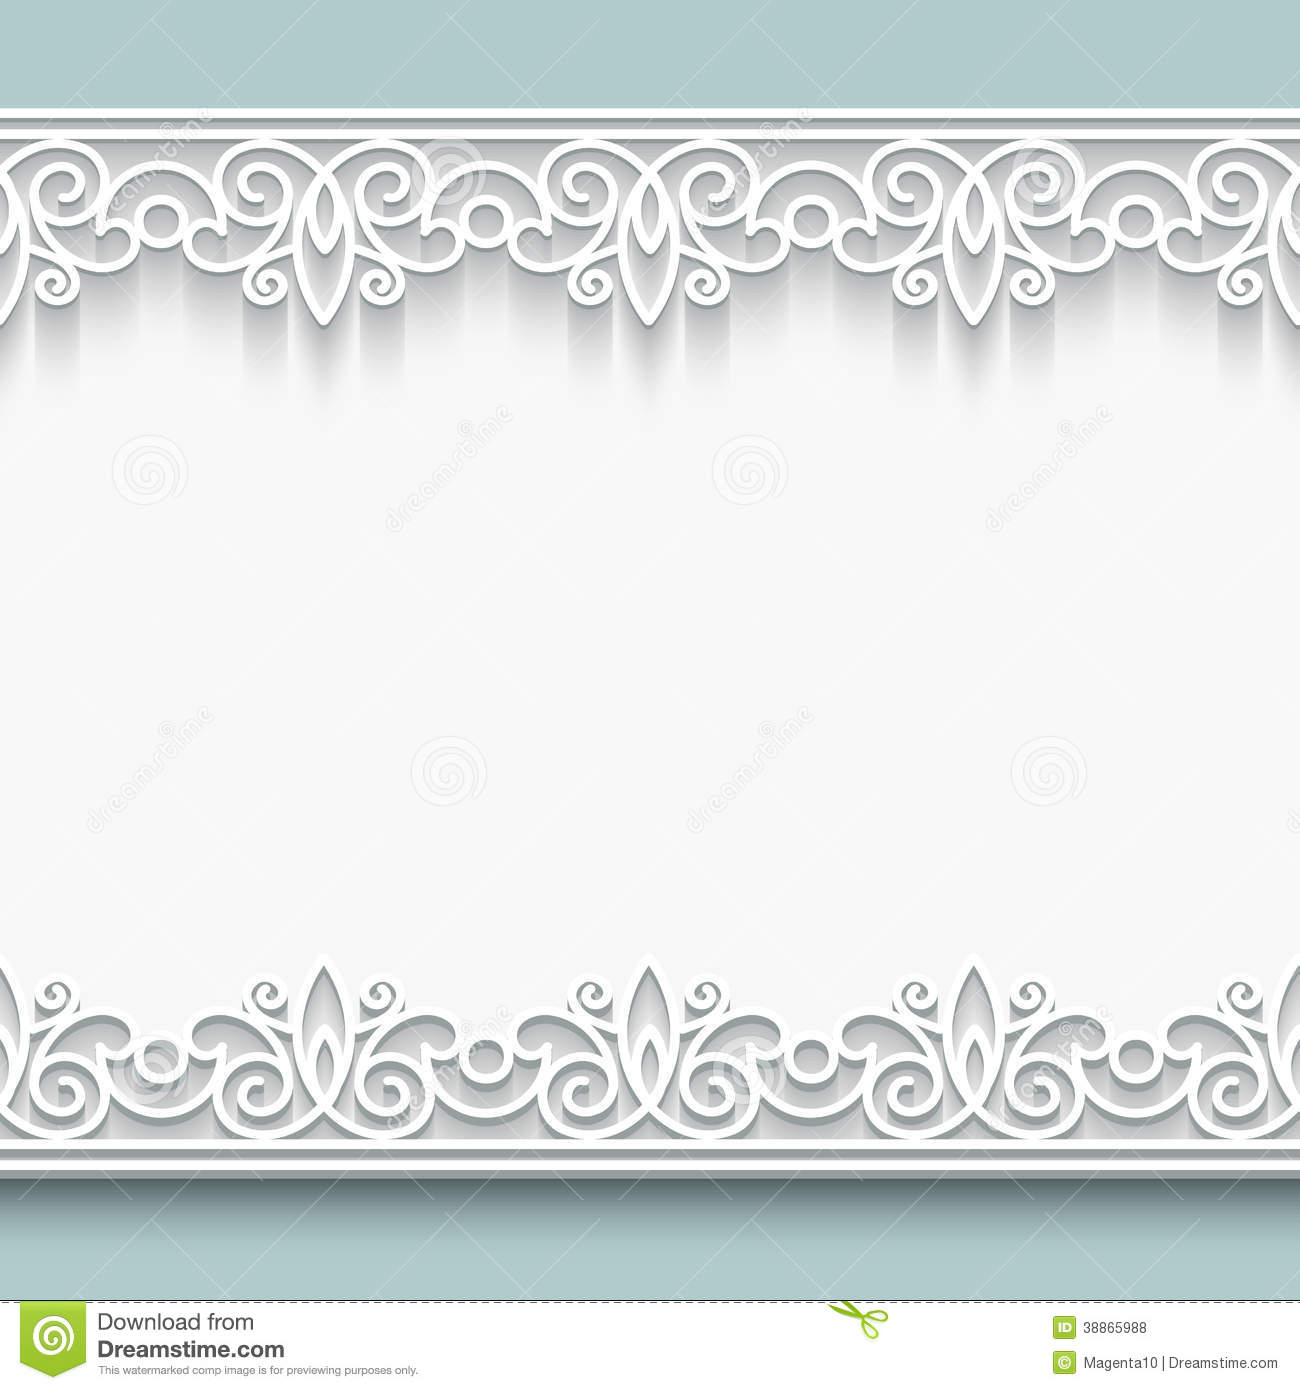 Royalty Free Stock Photos Paper Lace Frame Background Ornamental Seamless Borders Image38865988 on Swirl Border Pattern